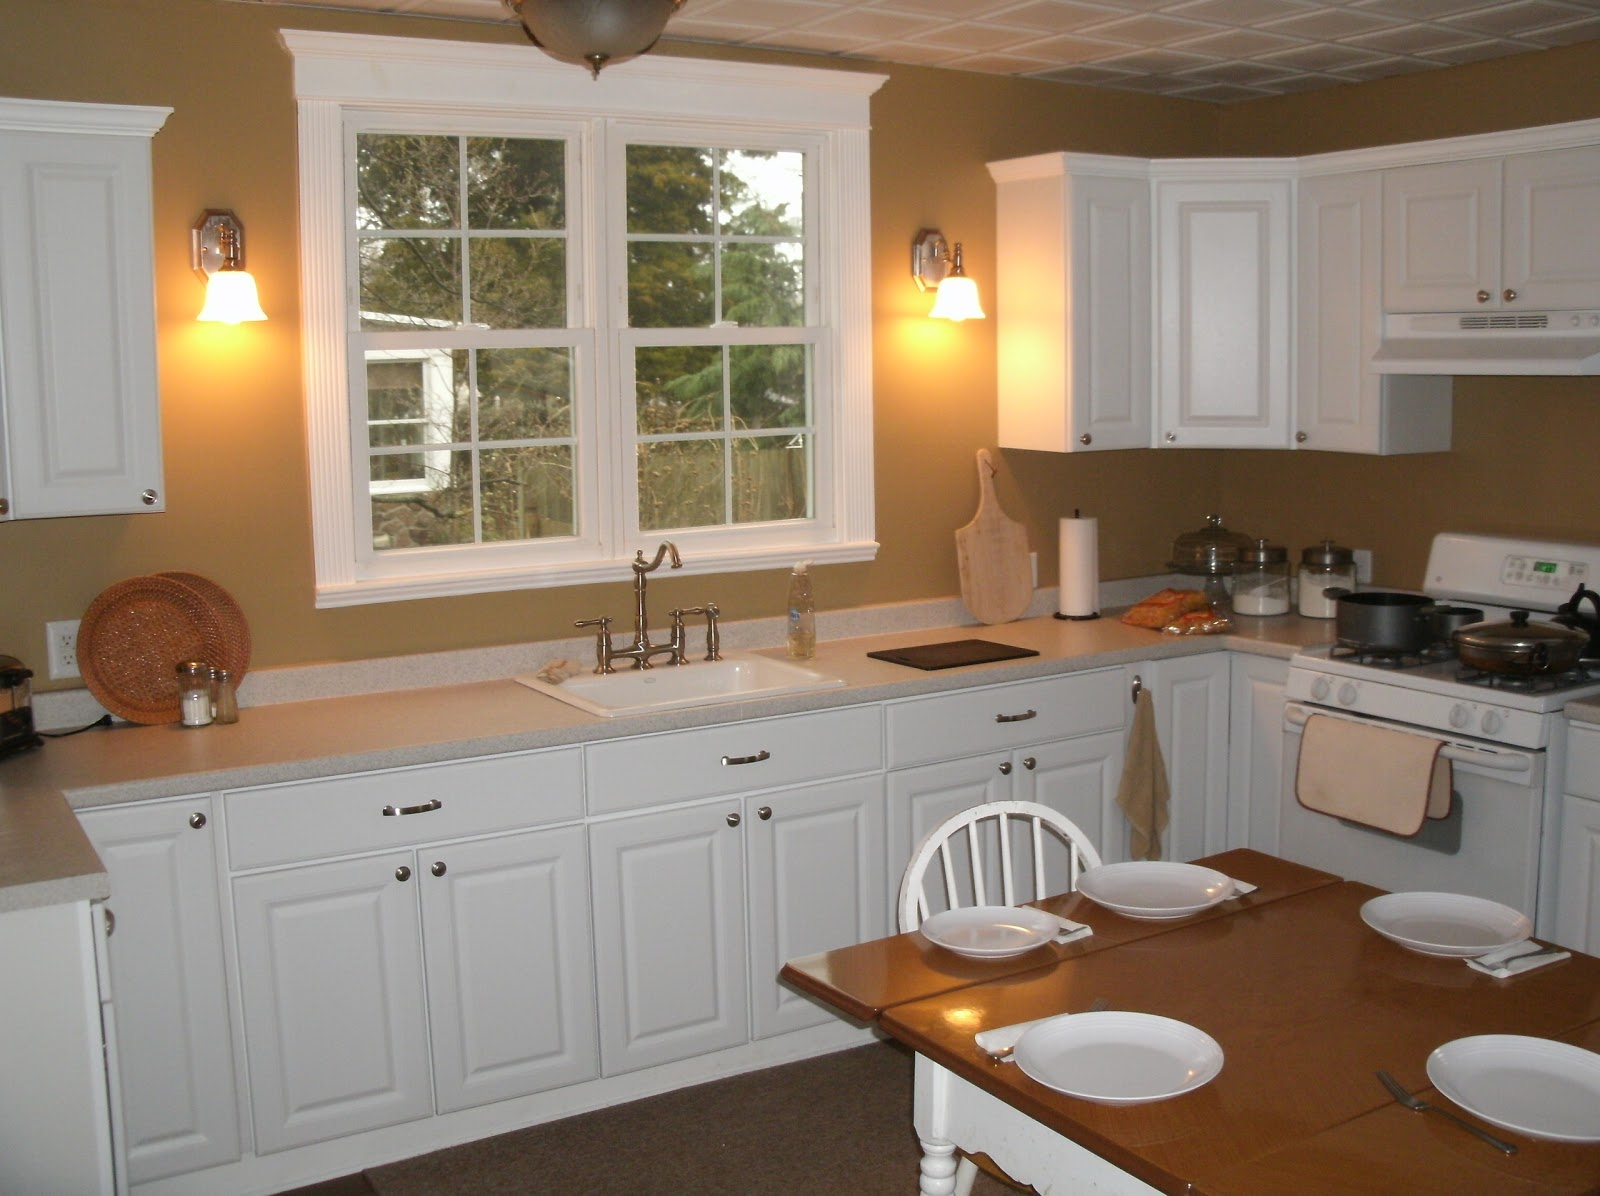 Home remodeling and improvements tips and how to 39 s for Kitchen remodel